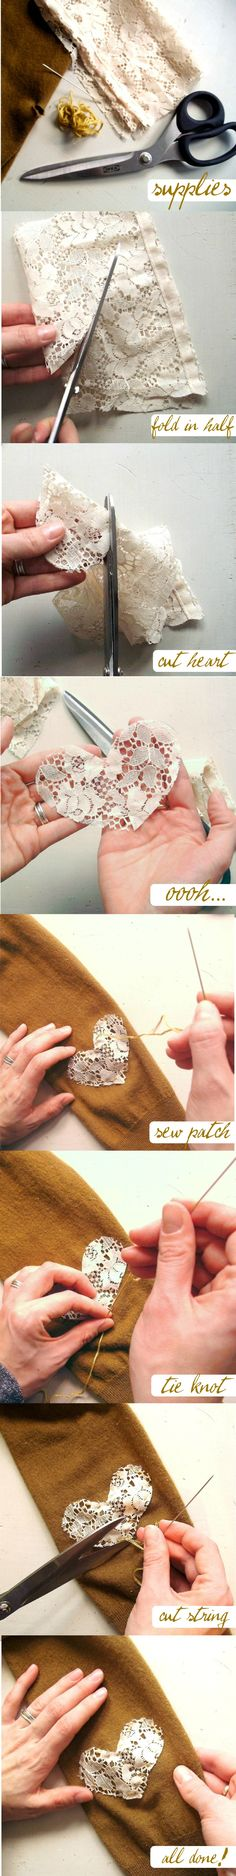 DIY Lacy Heart Elbow Patch. MUST DO.